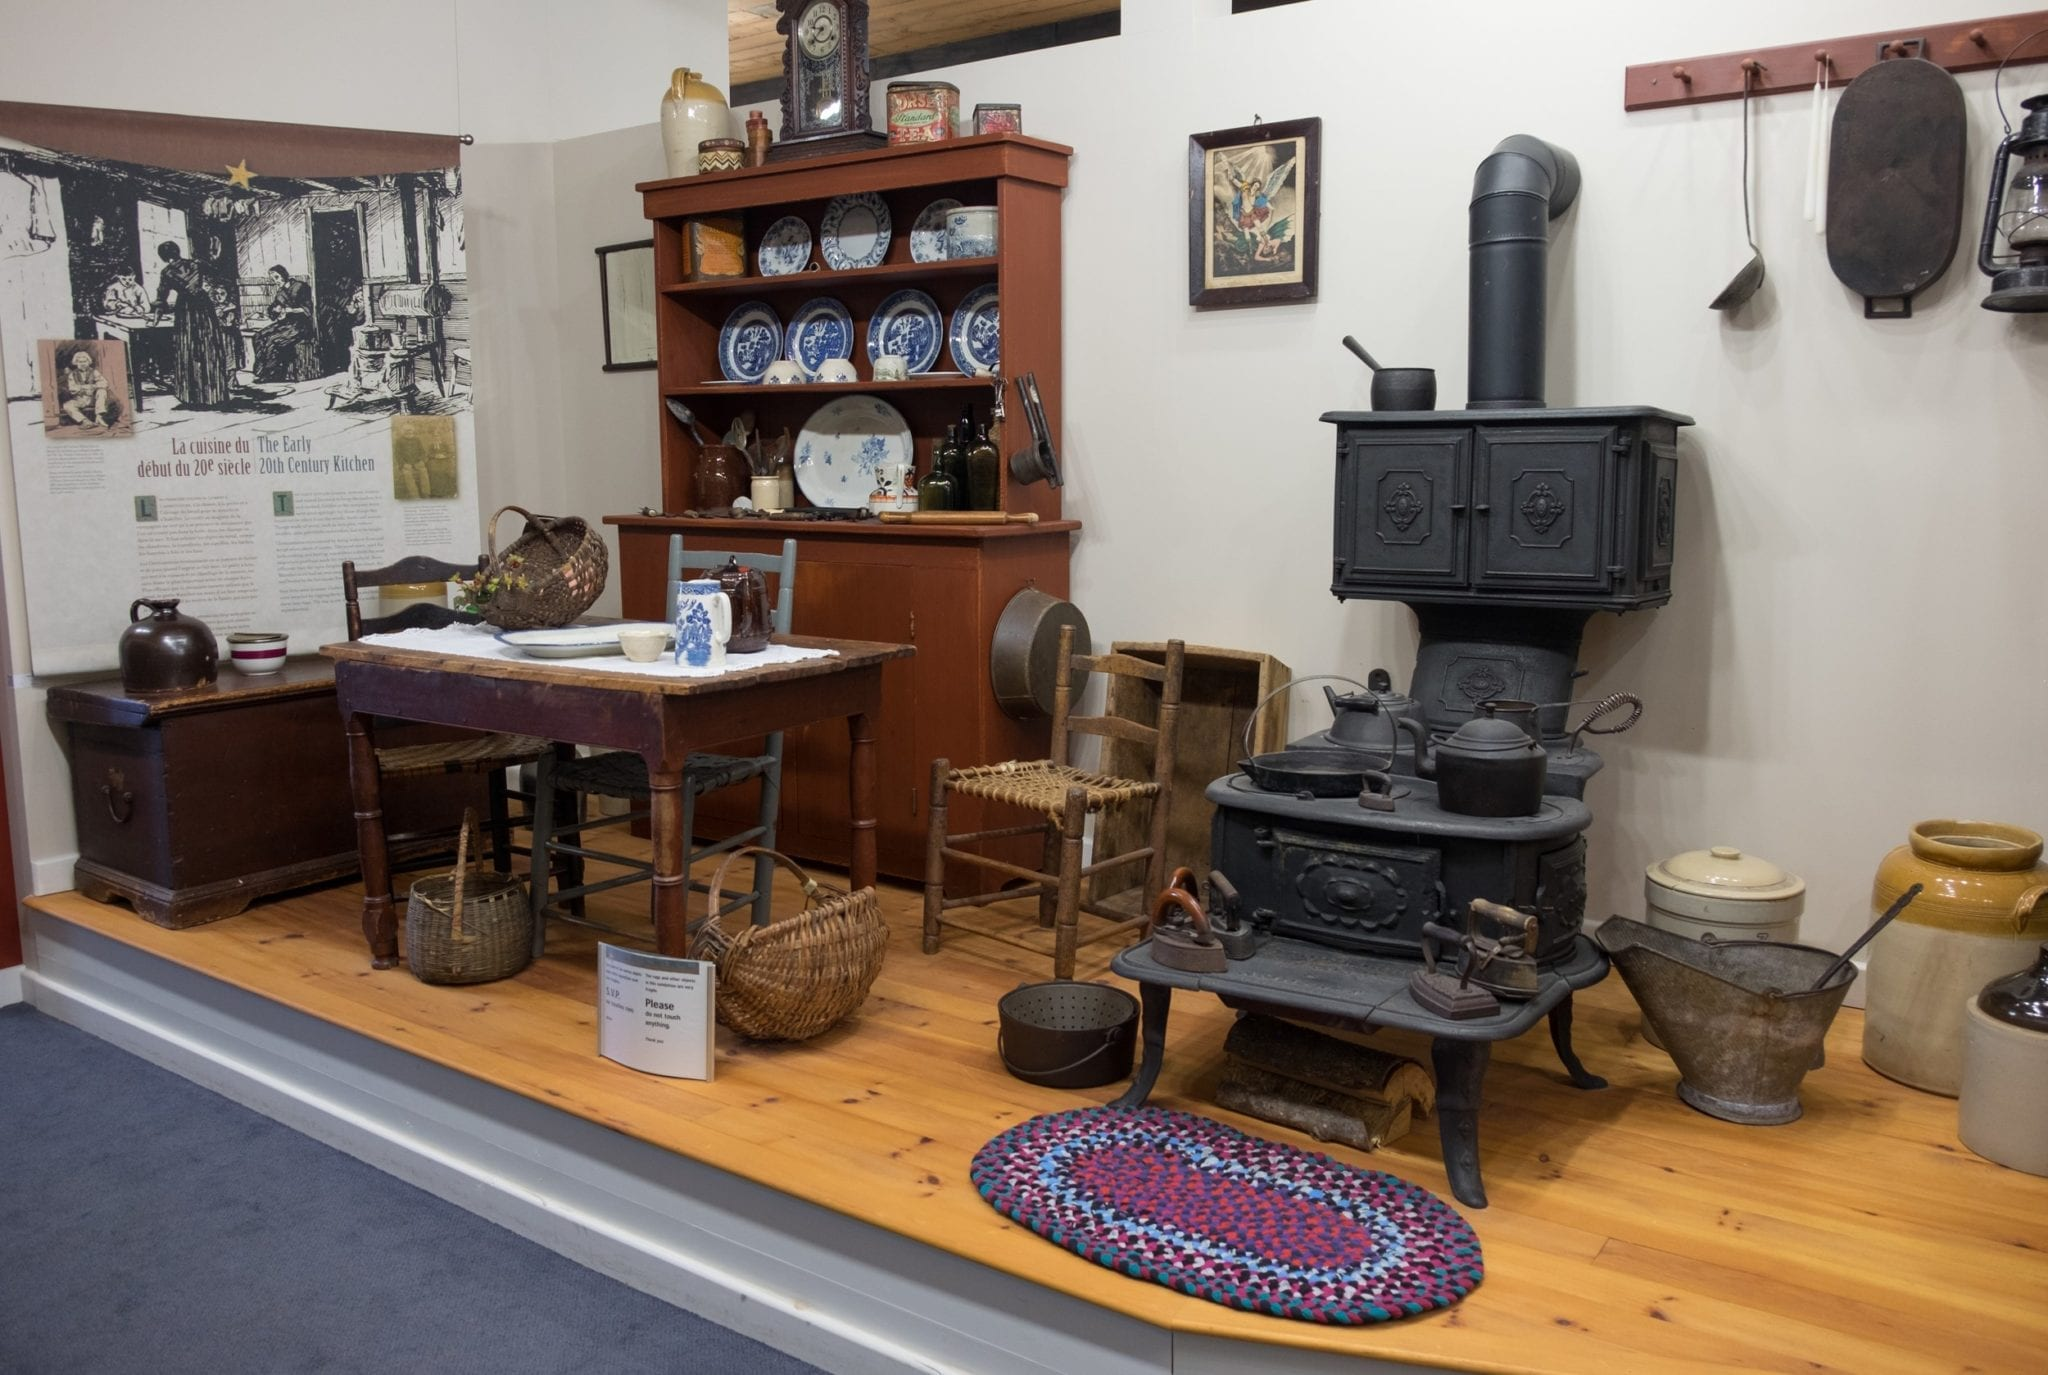 A recreation of an Acadian home at Les Trois Pignons with a china cabinet, wooden dining table, iron stove, and braided rug on the ground.